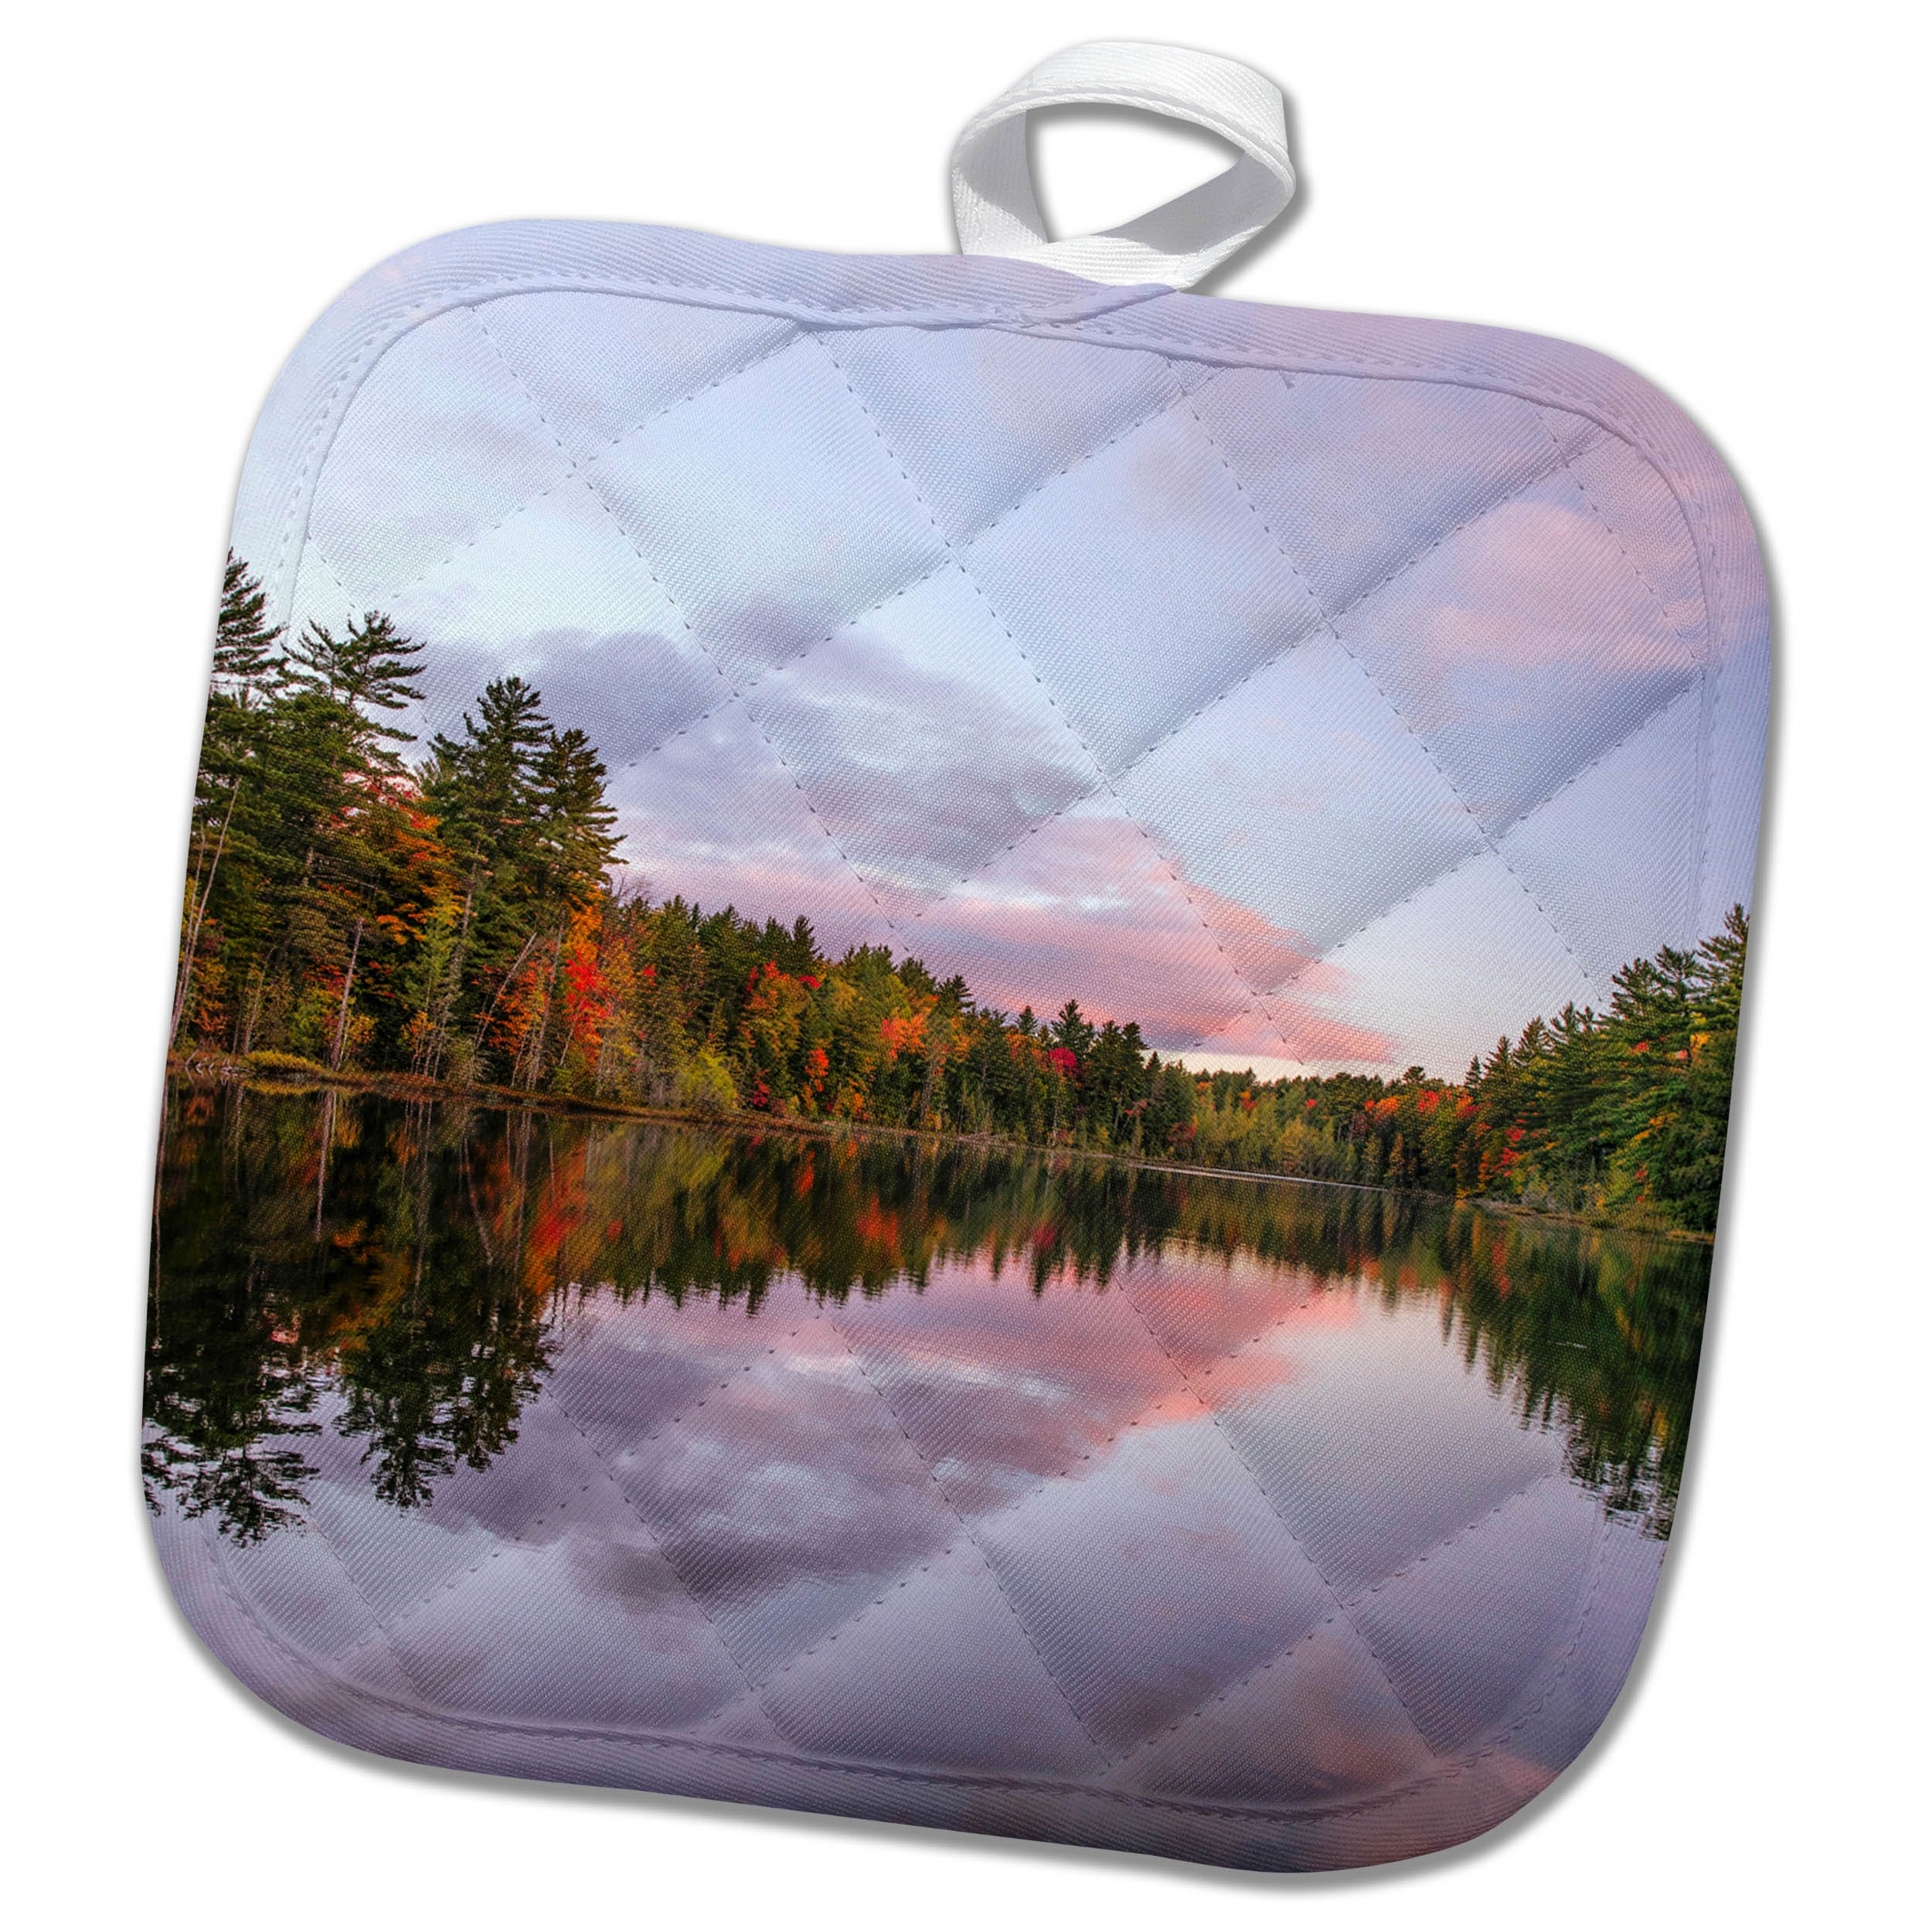 3dRose Danita Delimont - Lakes - Purple sunset over Irwin Lake, Hiawatha National Forest, Michigan. - 8x8 Potholder (phl_279070_1) by 3dRose (Image #2)